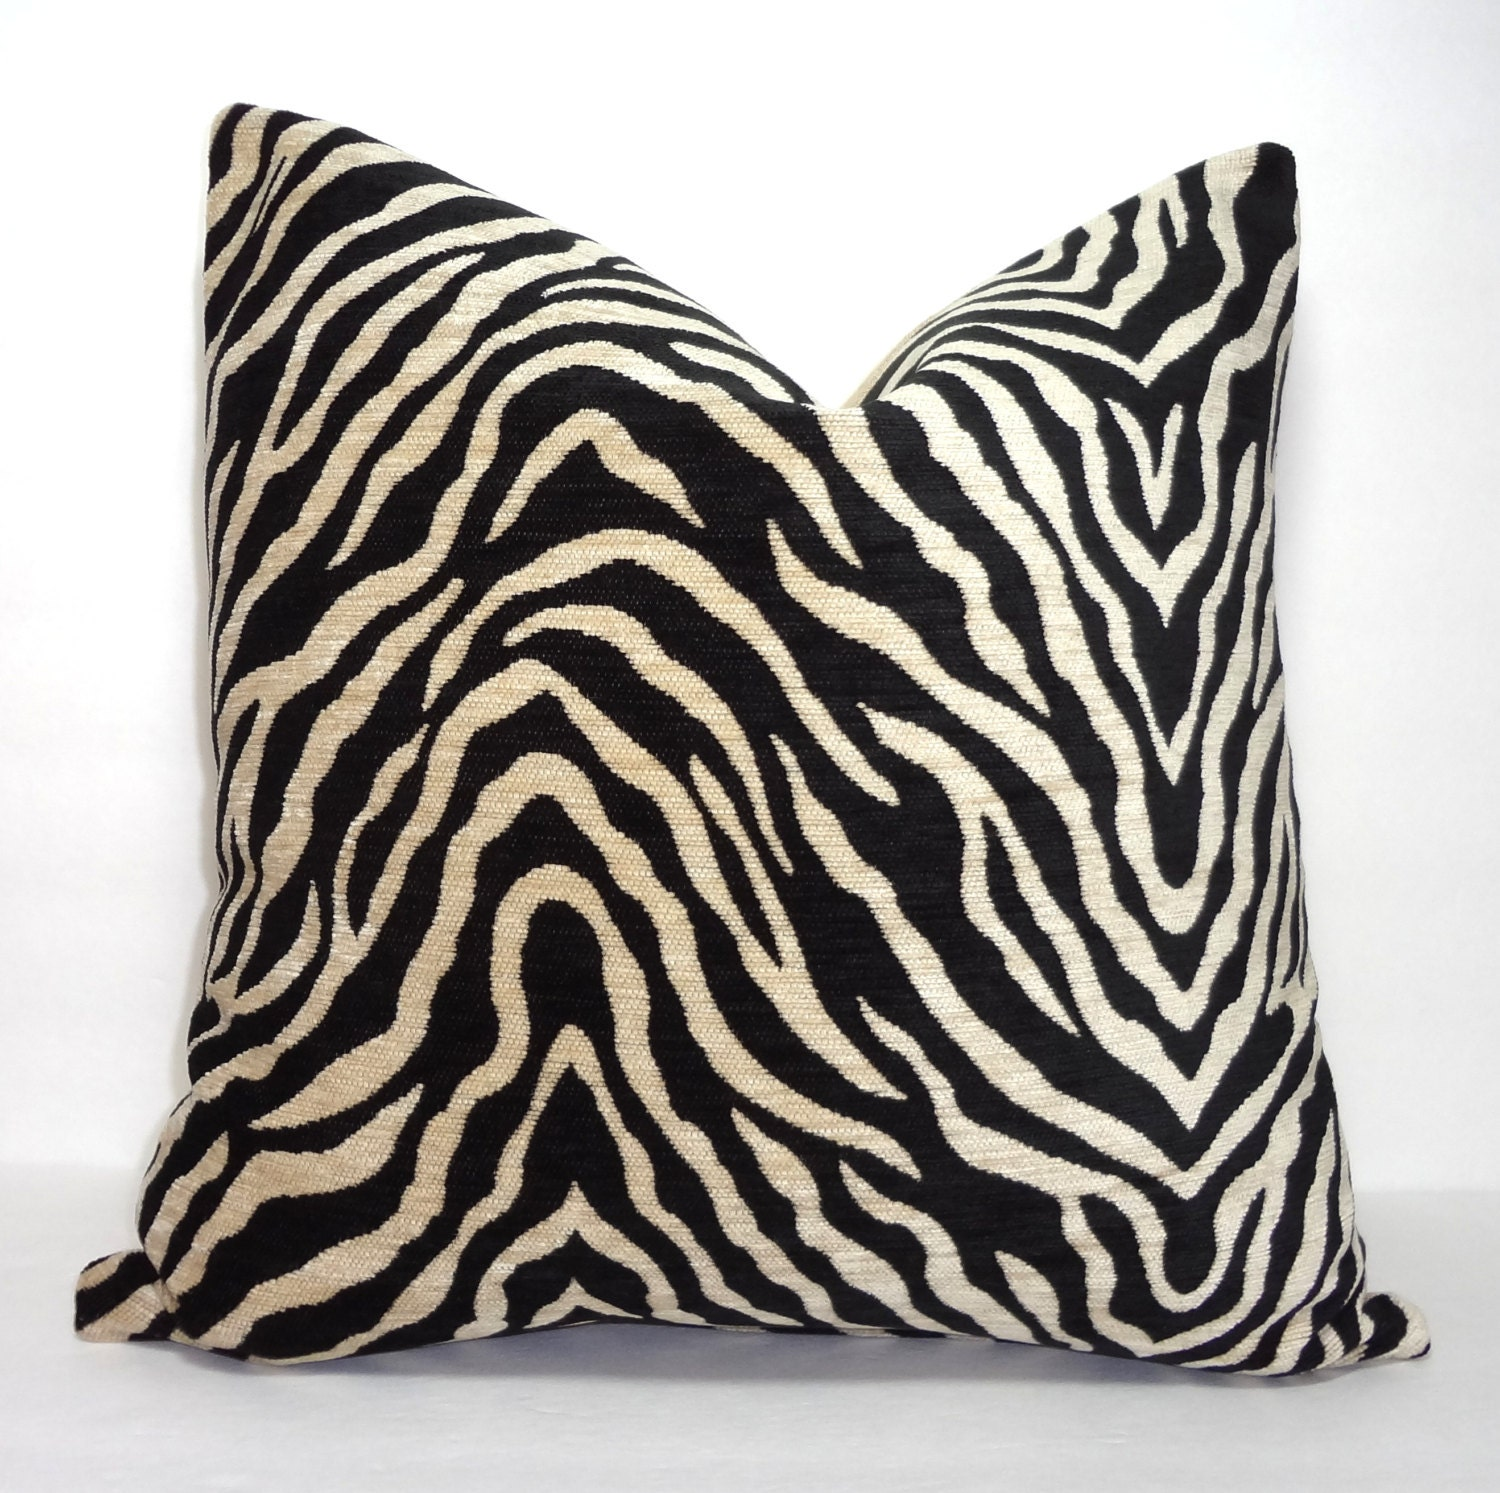 The Waterford Linens Marcello Zebra Throw Pillow adds an trendy accent to your elegant top of bed. Featuring a zebra print across the face in neutral tones of cream and taupe, the oblong throw pillow is finished with a taupe corded trim.